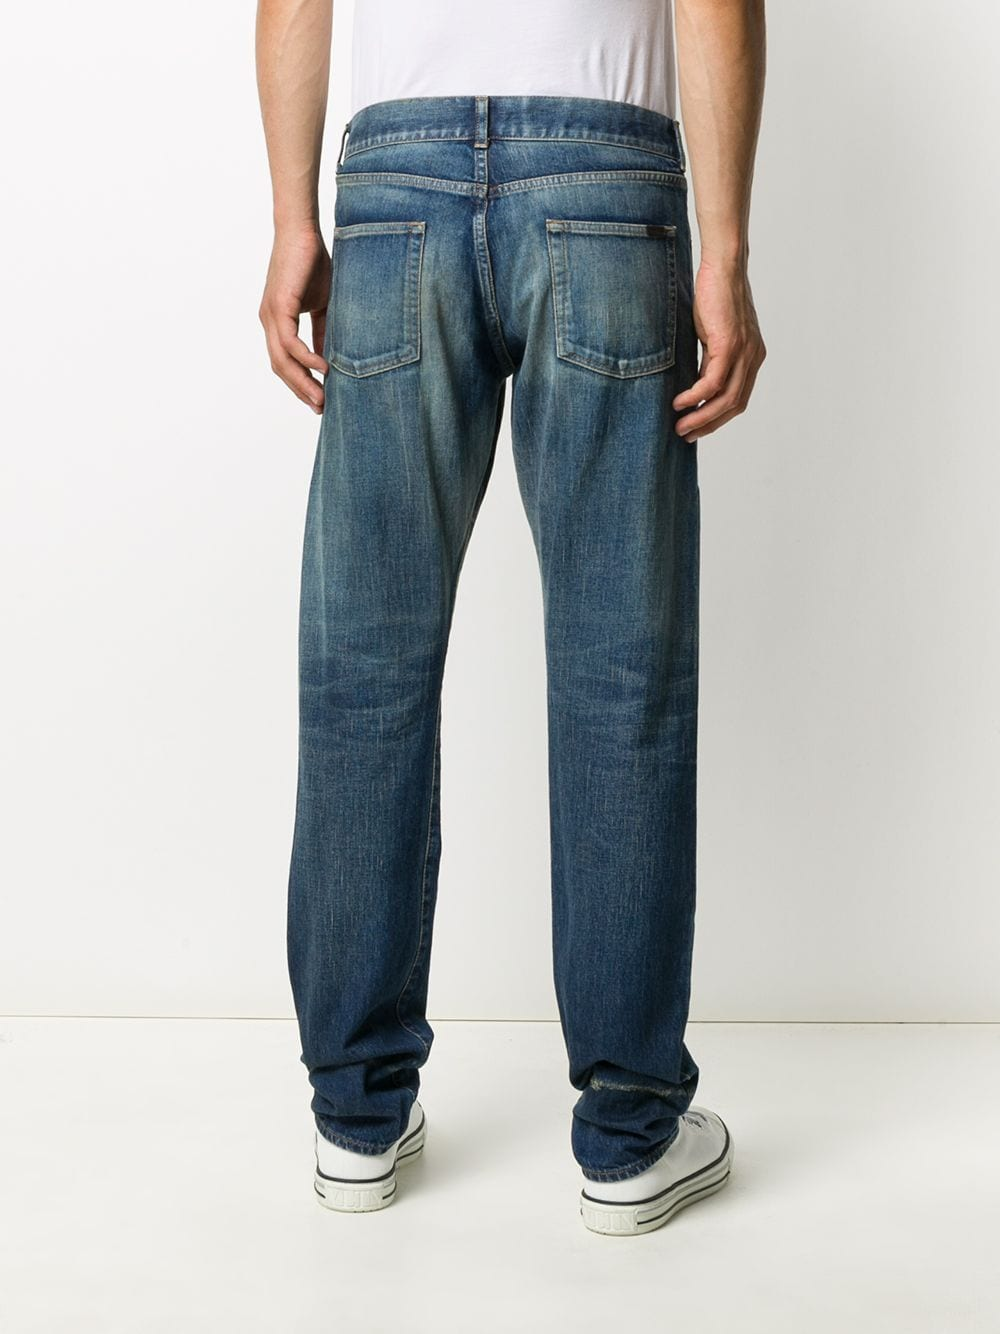 SAINT LAURENT MEN SLIM FIT JEANS